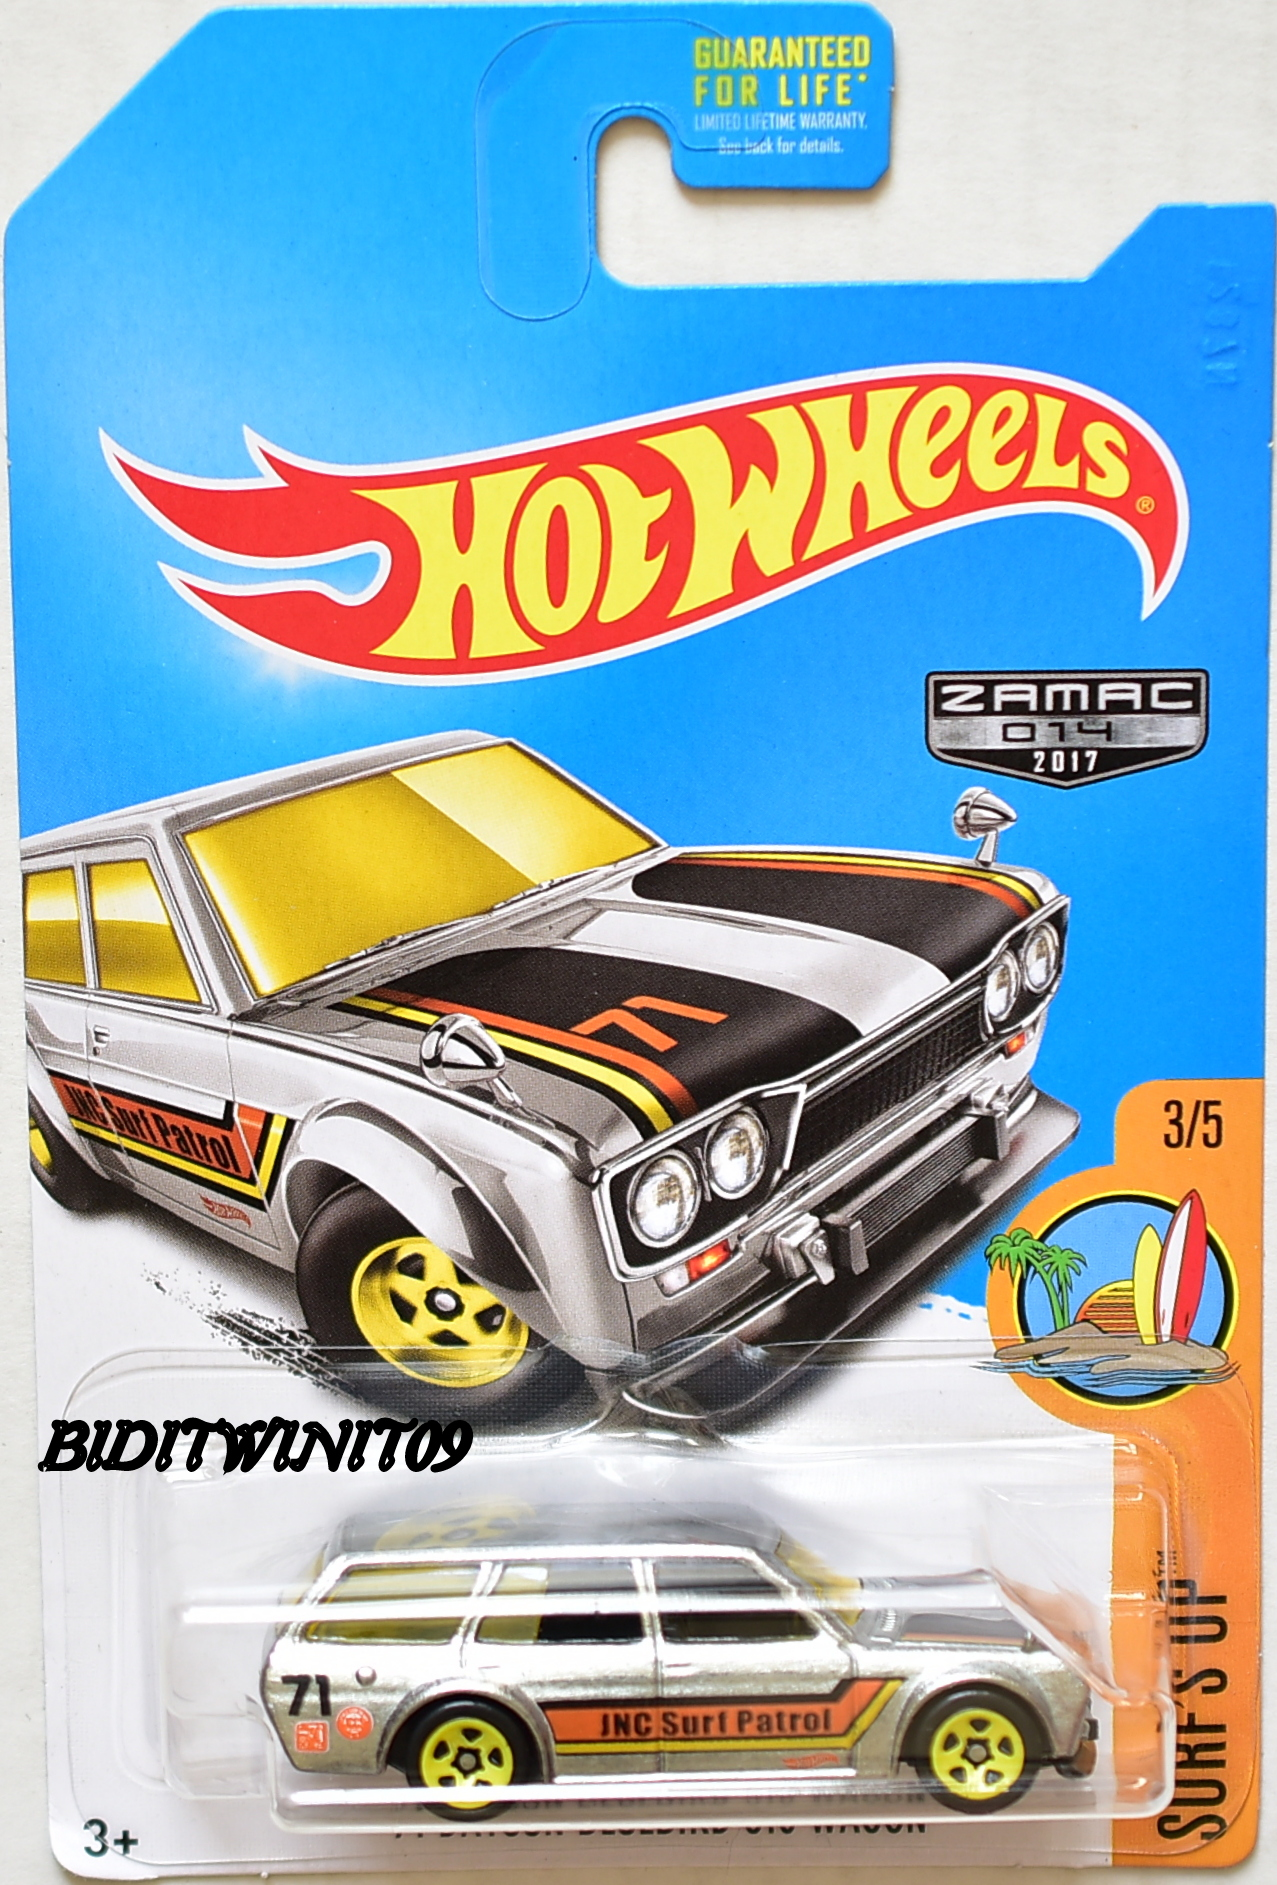 HW Collectibles : Biditwinit09.com, Classic colections